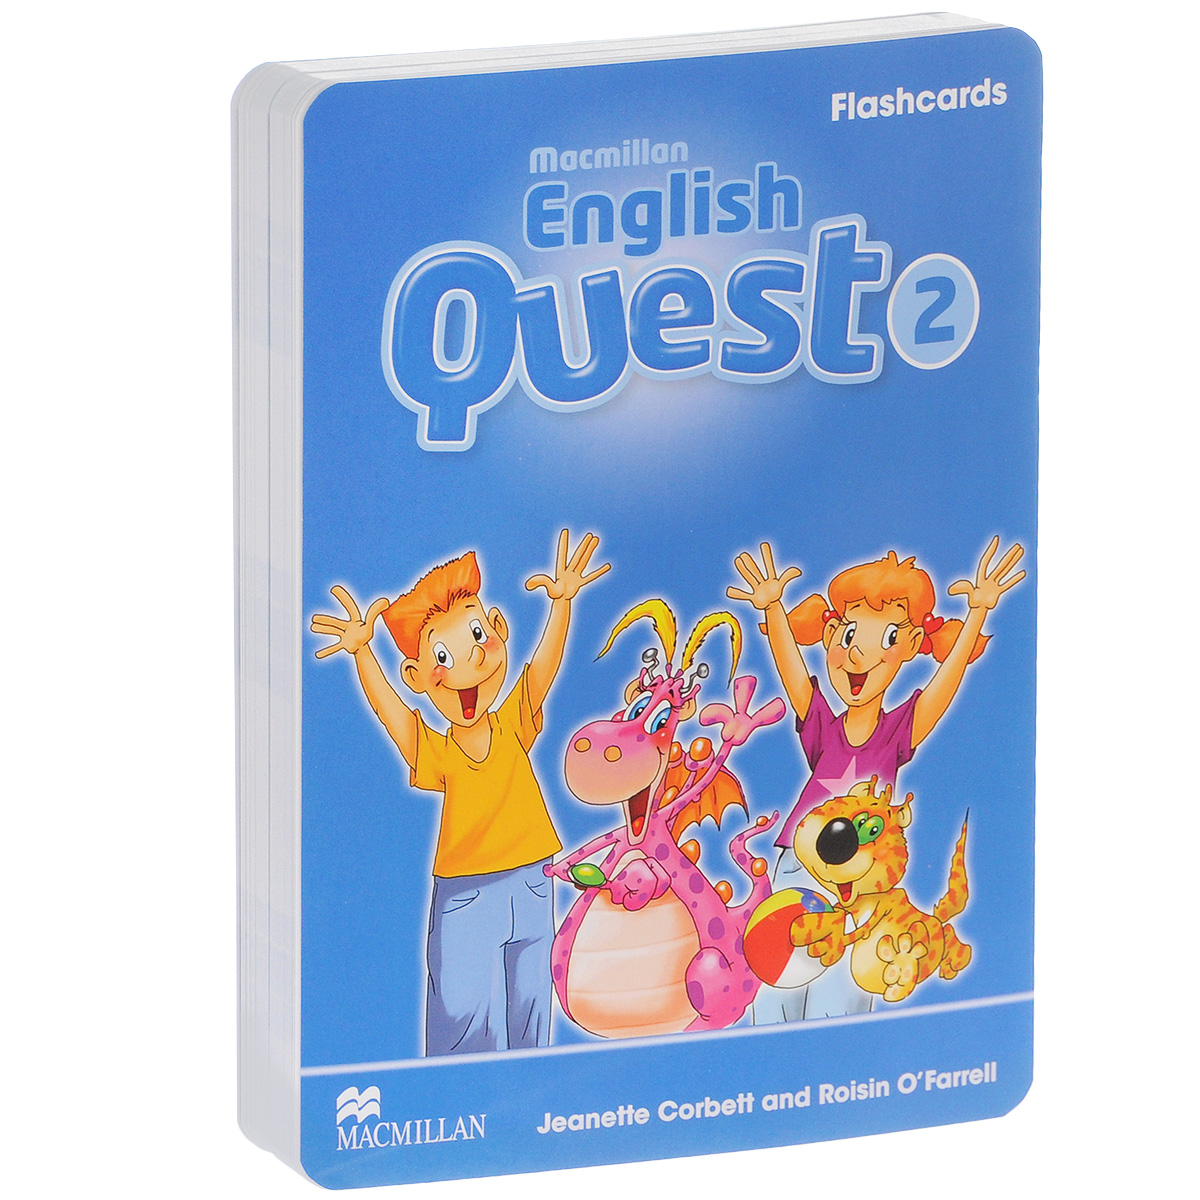 Macmillan English Quest 2: Flashcards fourth grade vocabulary flashcards